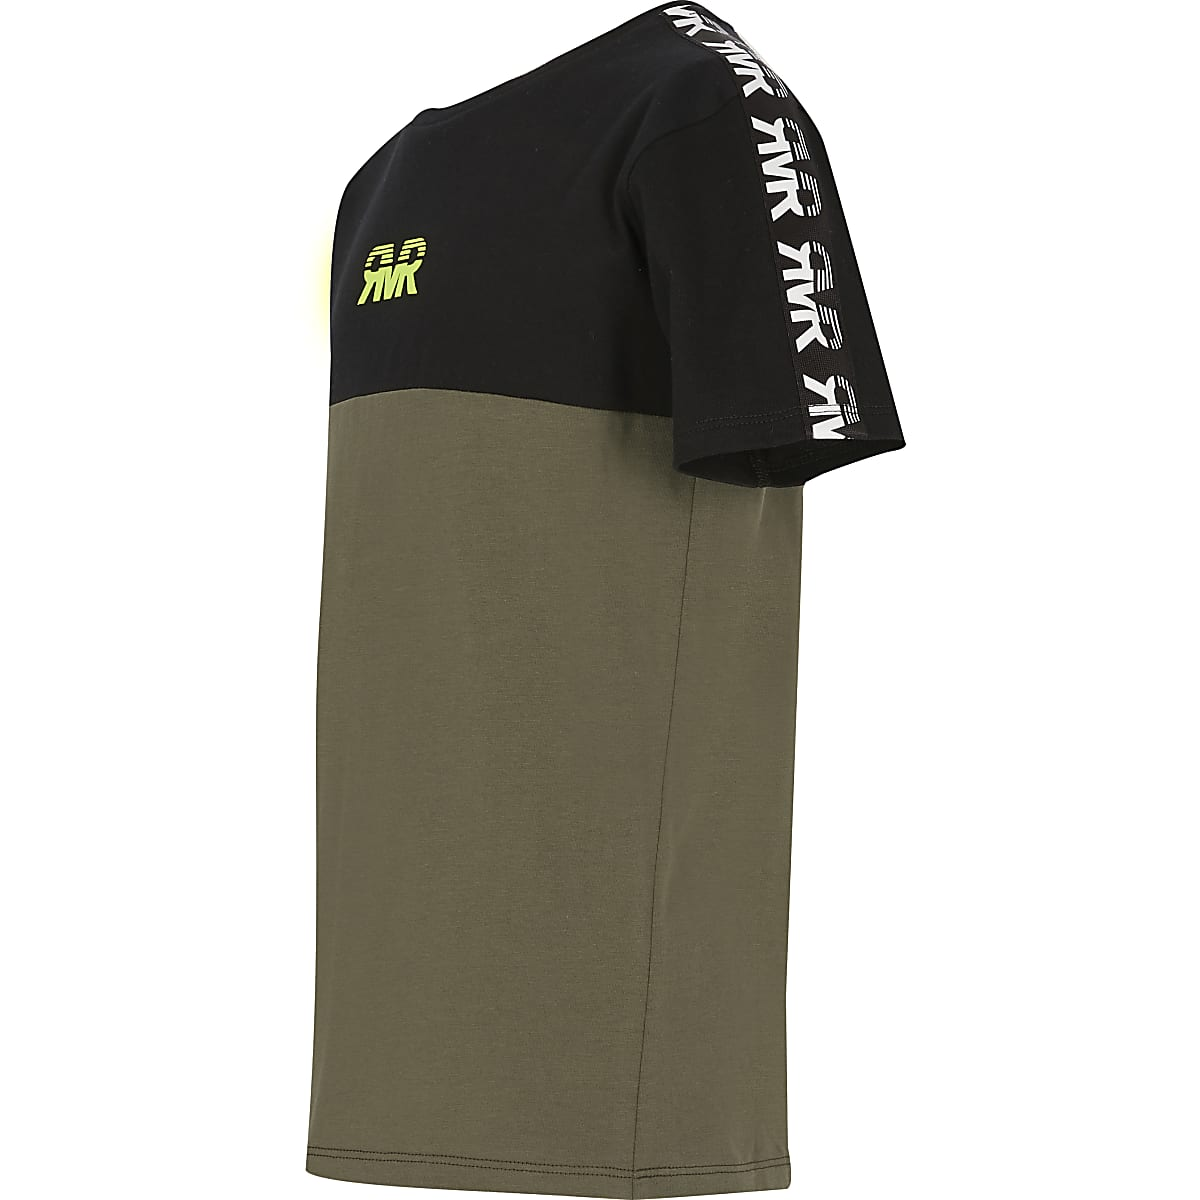 Boys khaki blocked RVR T-shirt